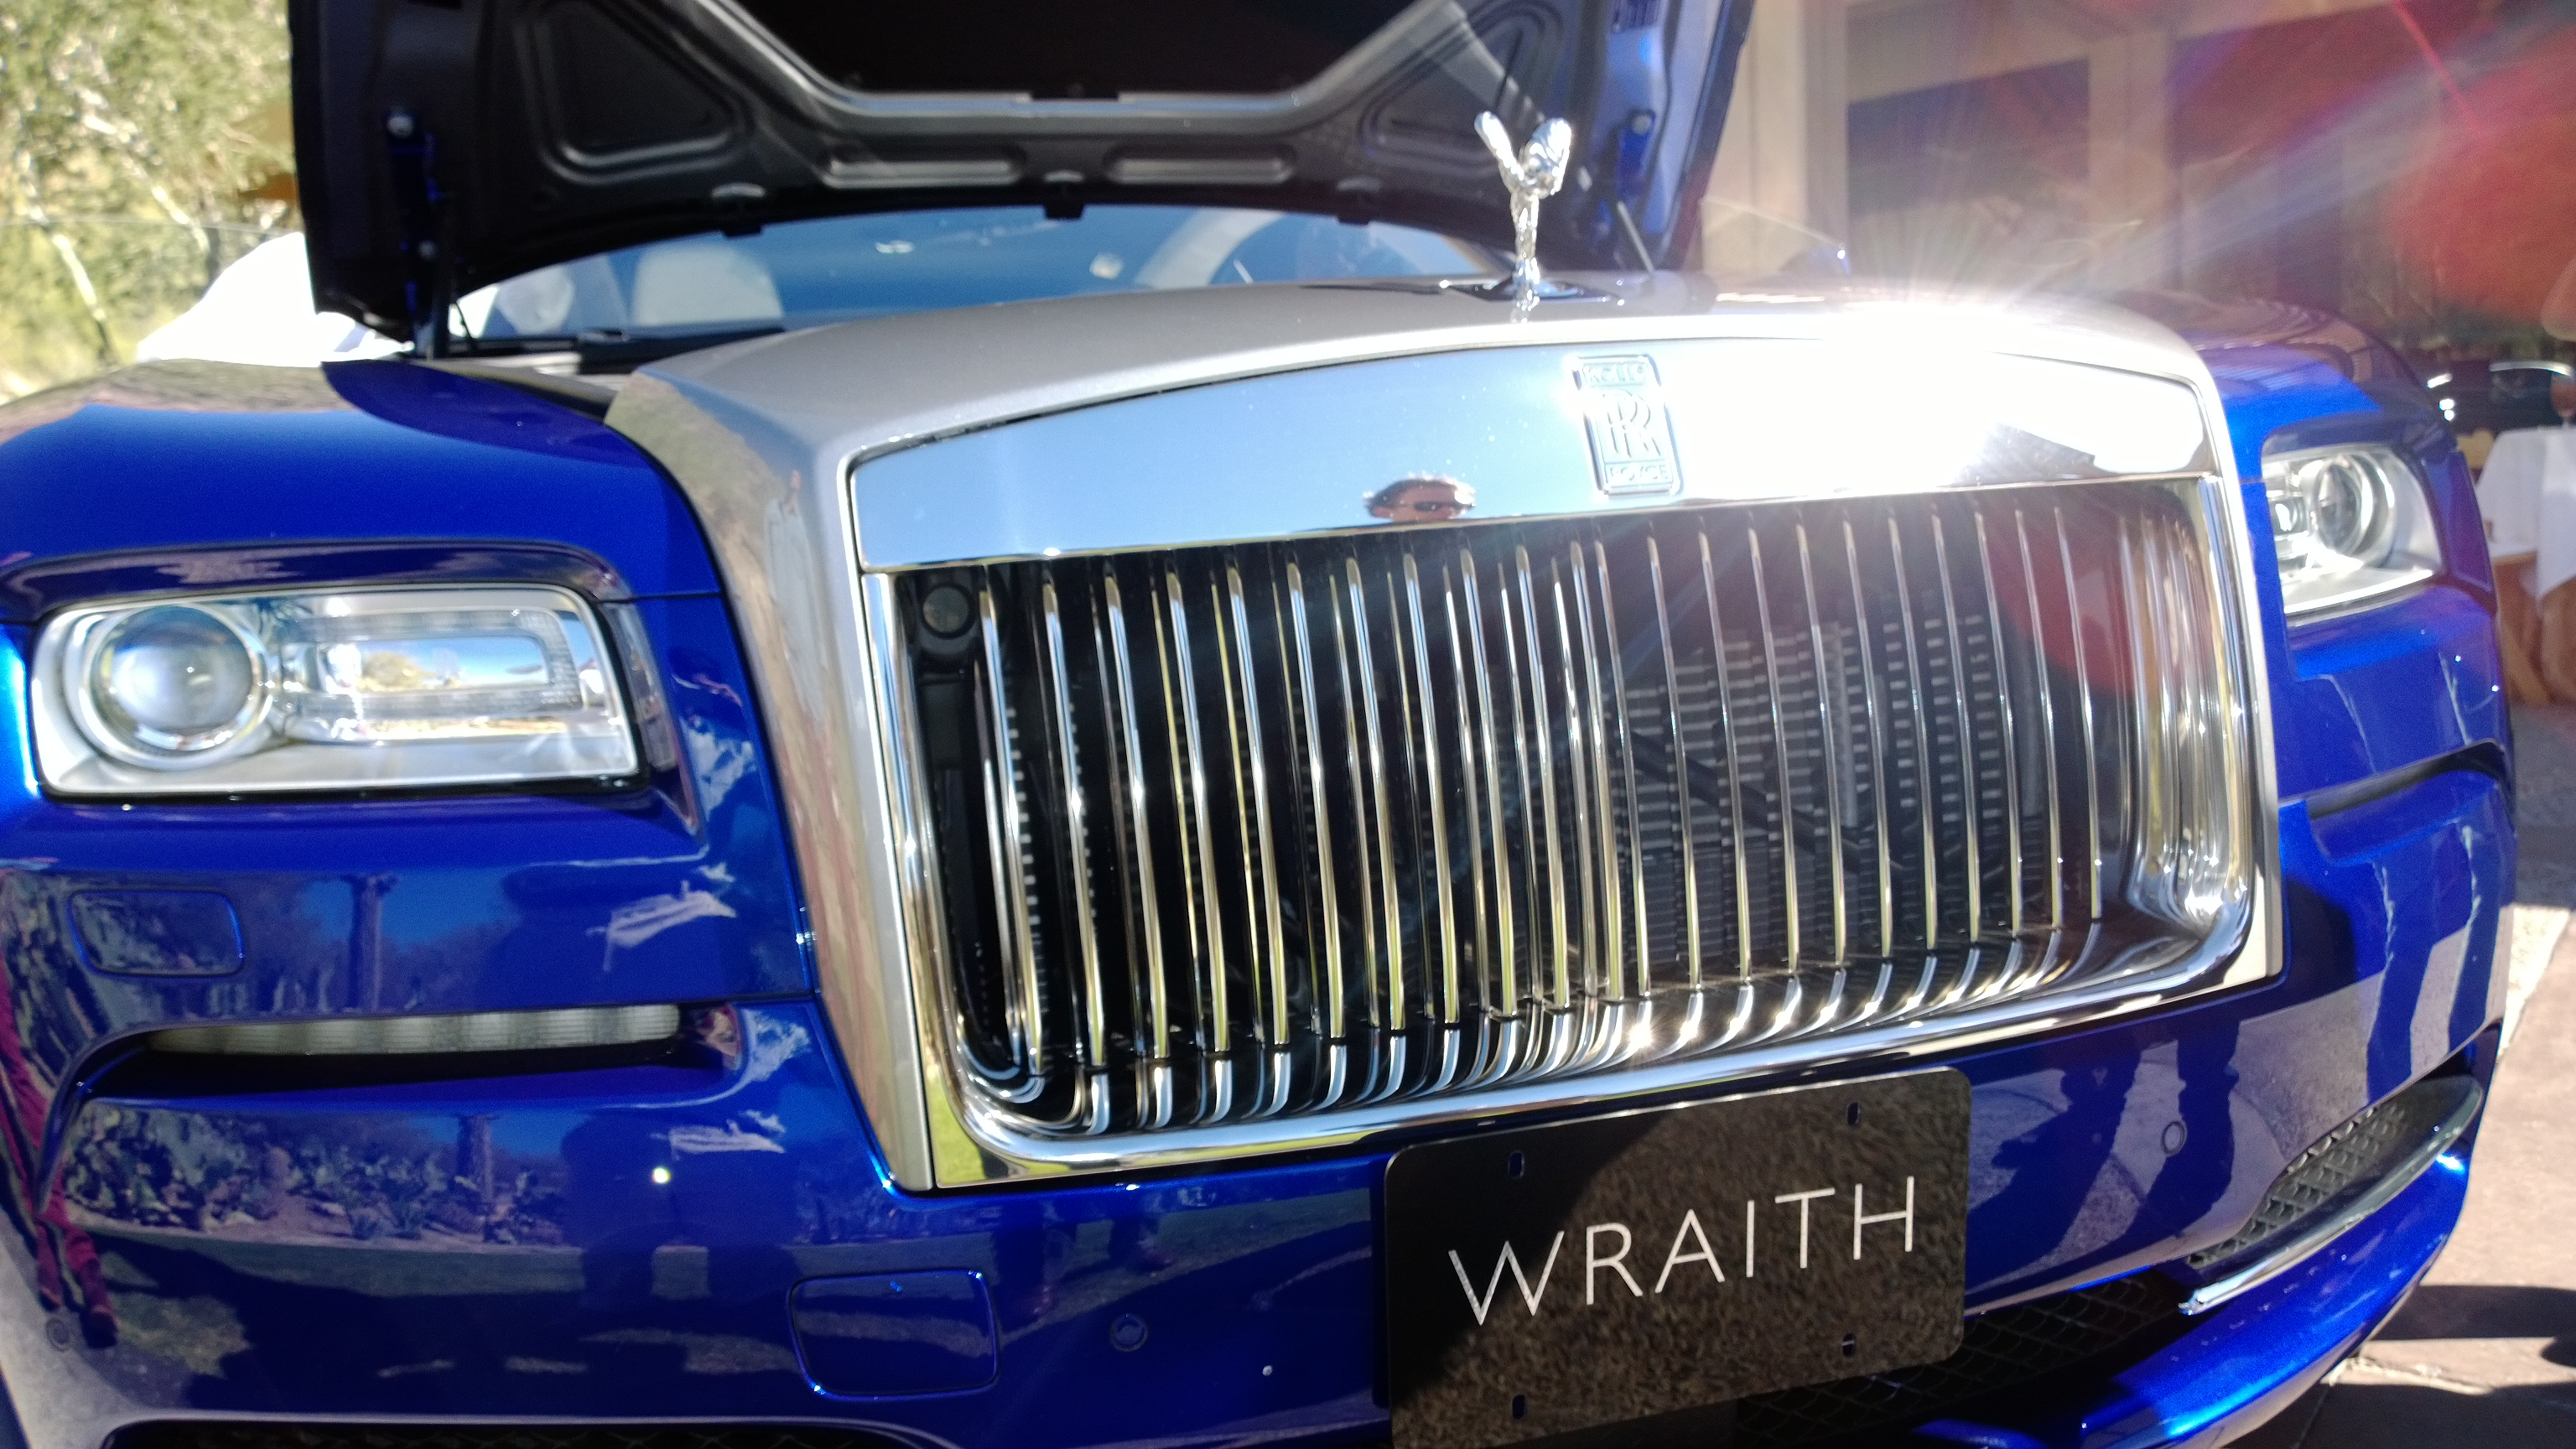 WP 20131103 12 54 16 Pro Exclusive: 2013 Rolls Royce Wraith   All You Need to Know